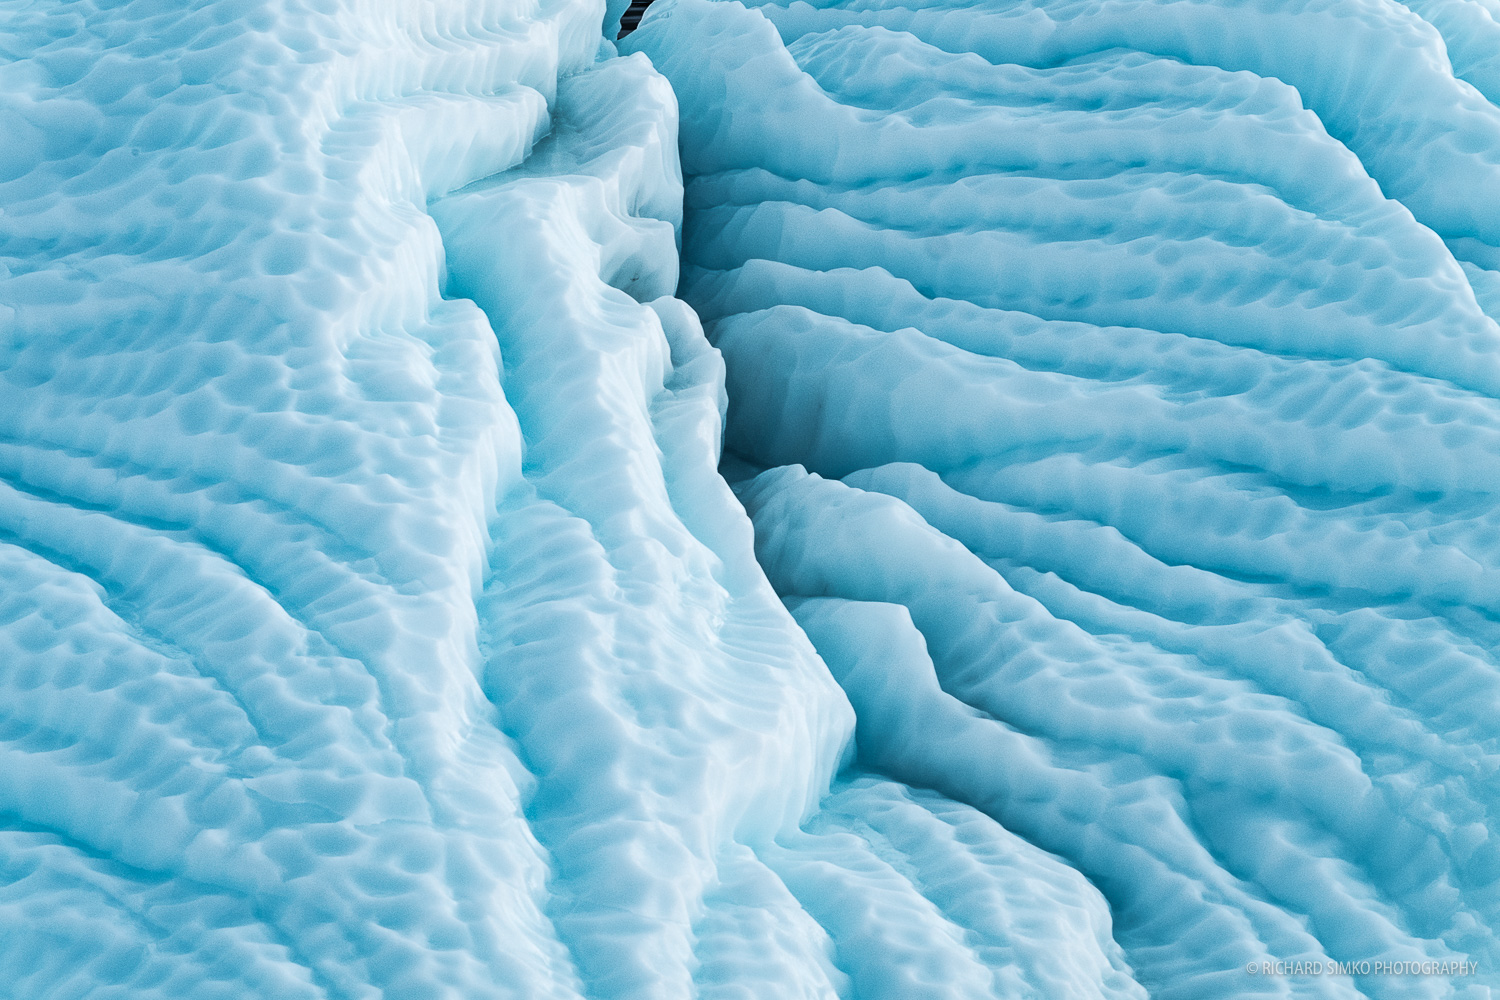 An iceberg detail.